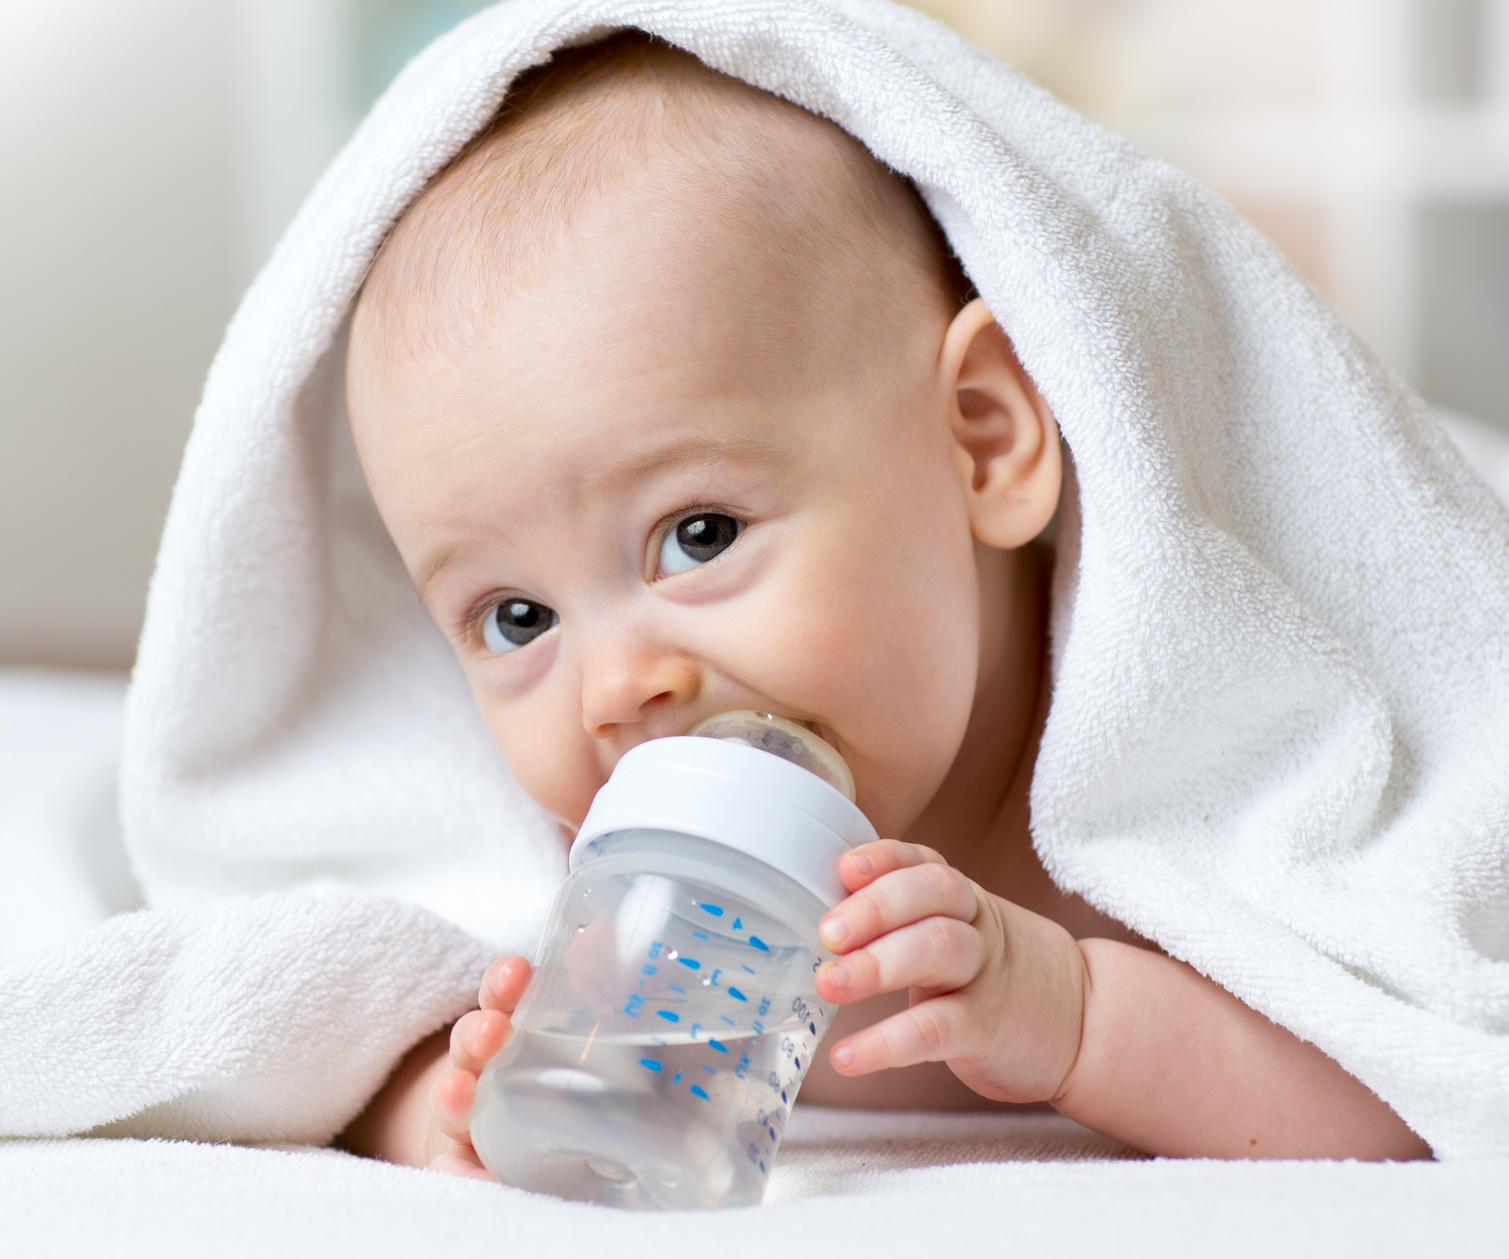 Happy baby drinks water from bottle wrapped towel after bathing